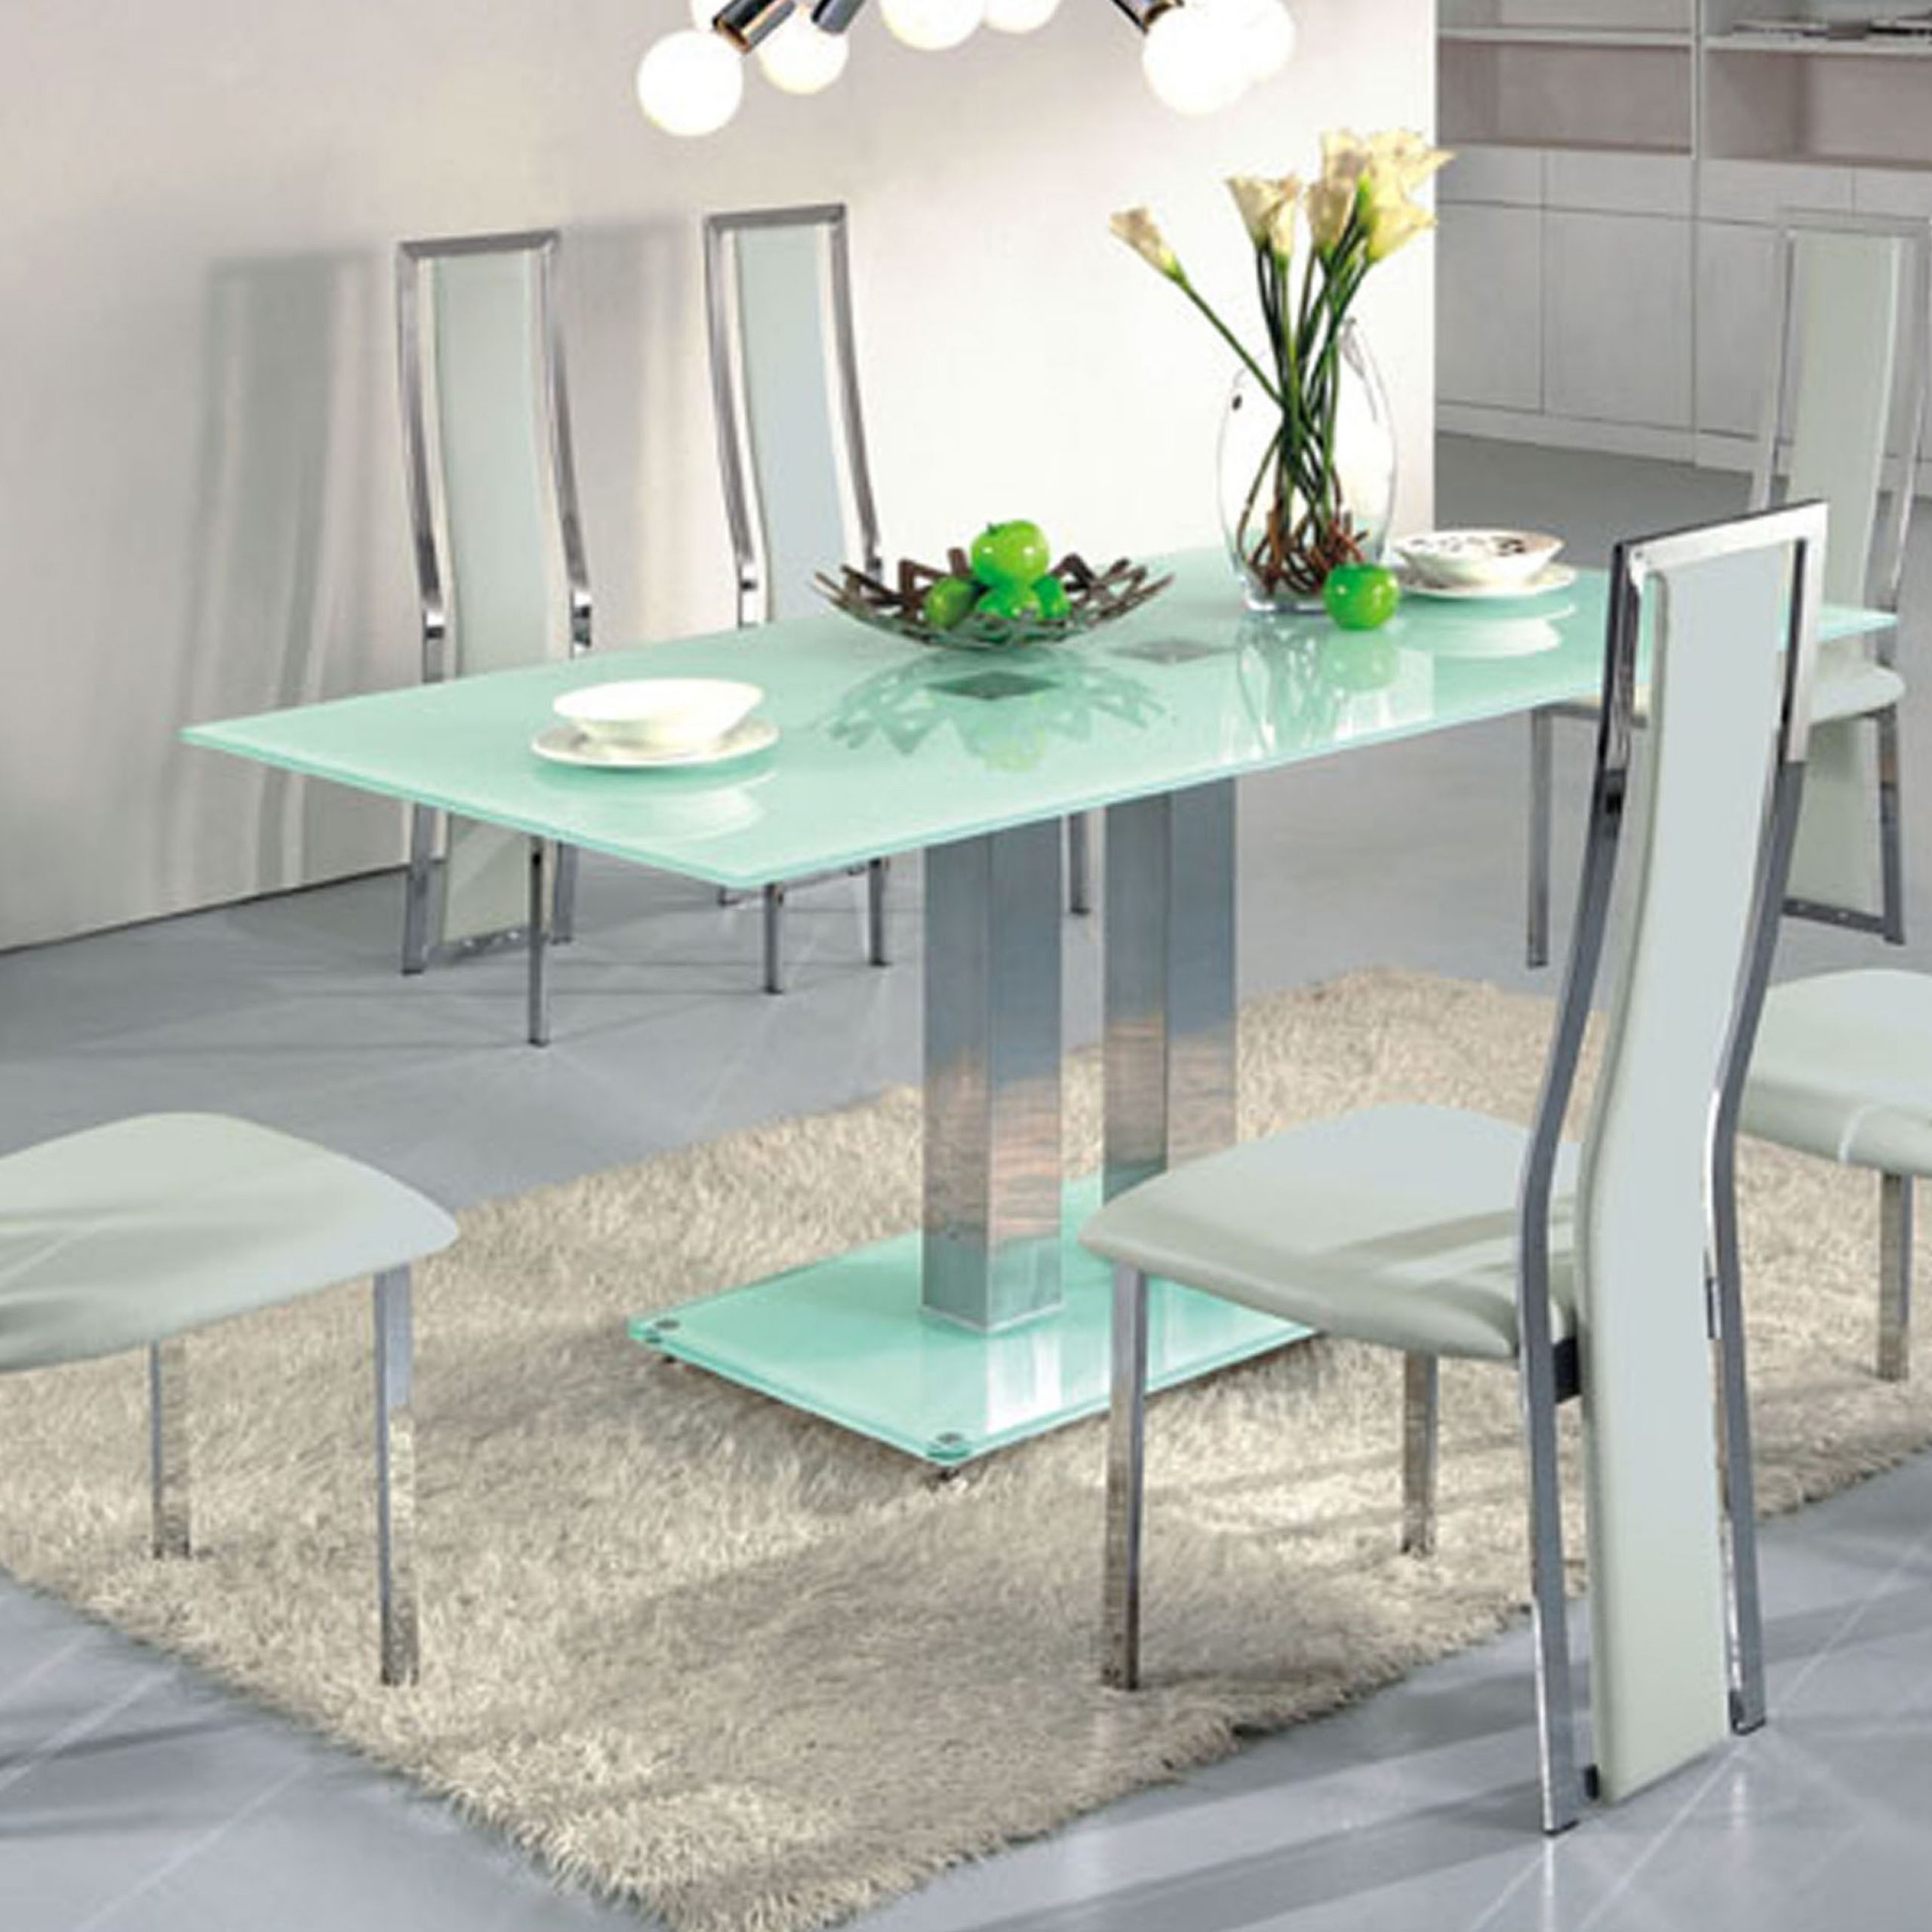 Contemporary Dining Table With Glass Top And Bas With With Regard To 2017 Steel And Glass Rectangle Dining Tables (View 11 of 30)